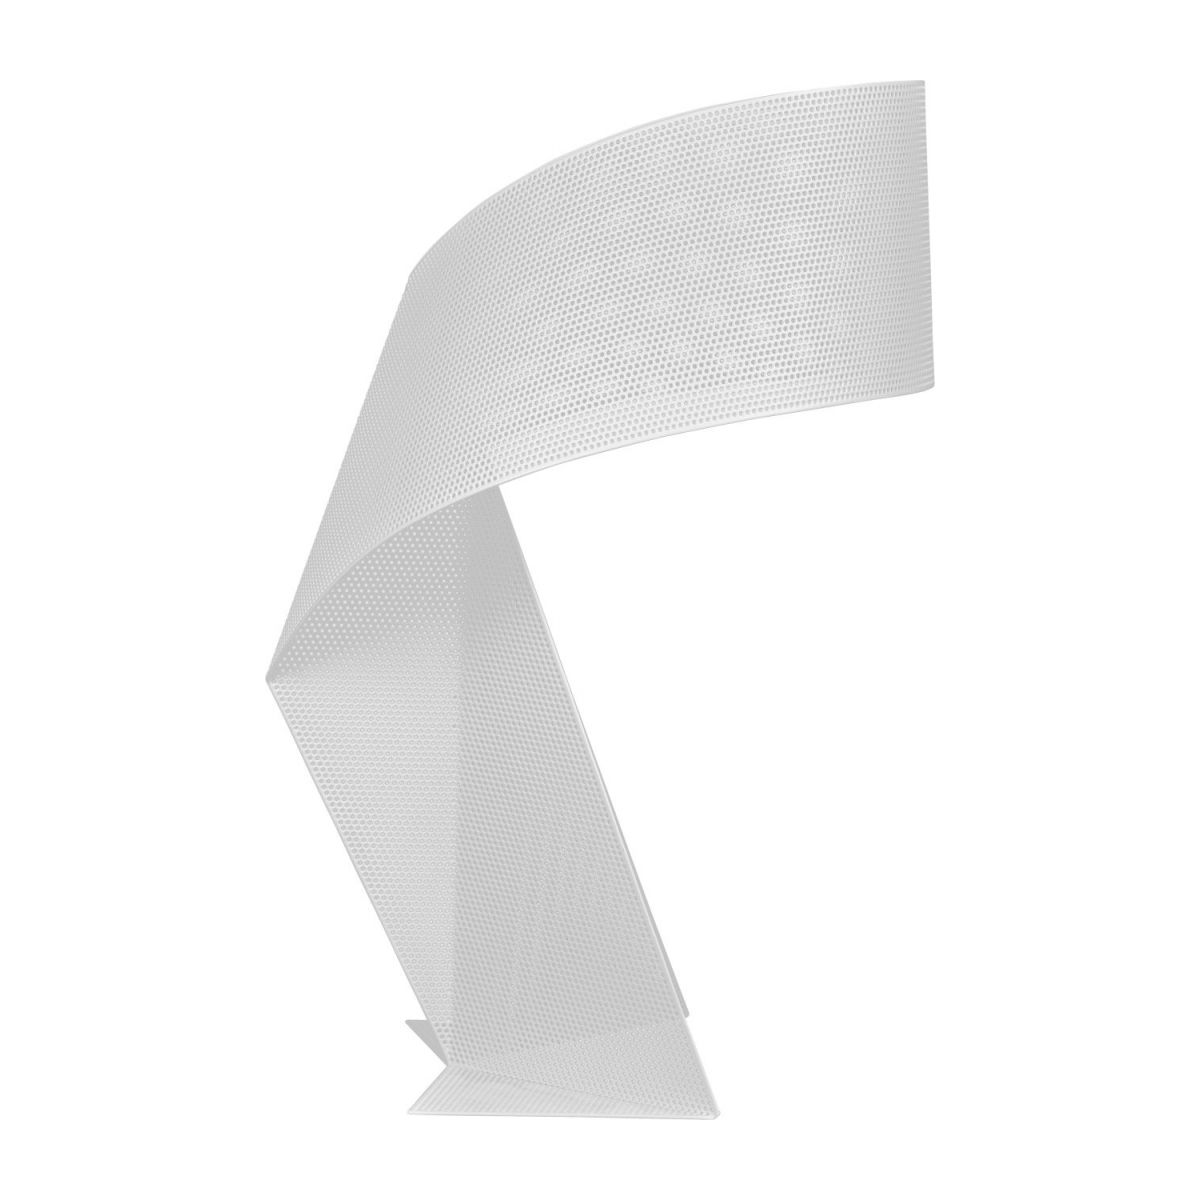 Lampe de table en métal perforé - Blanc - 50 cm n°4